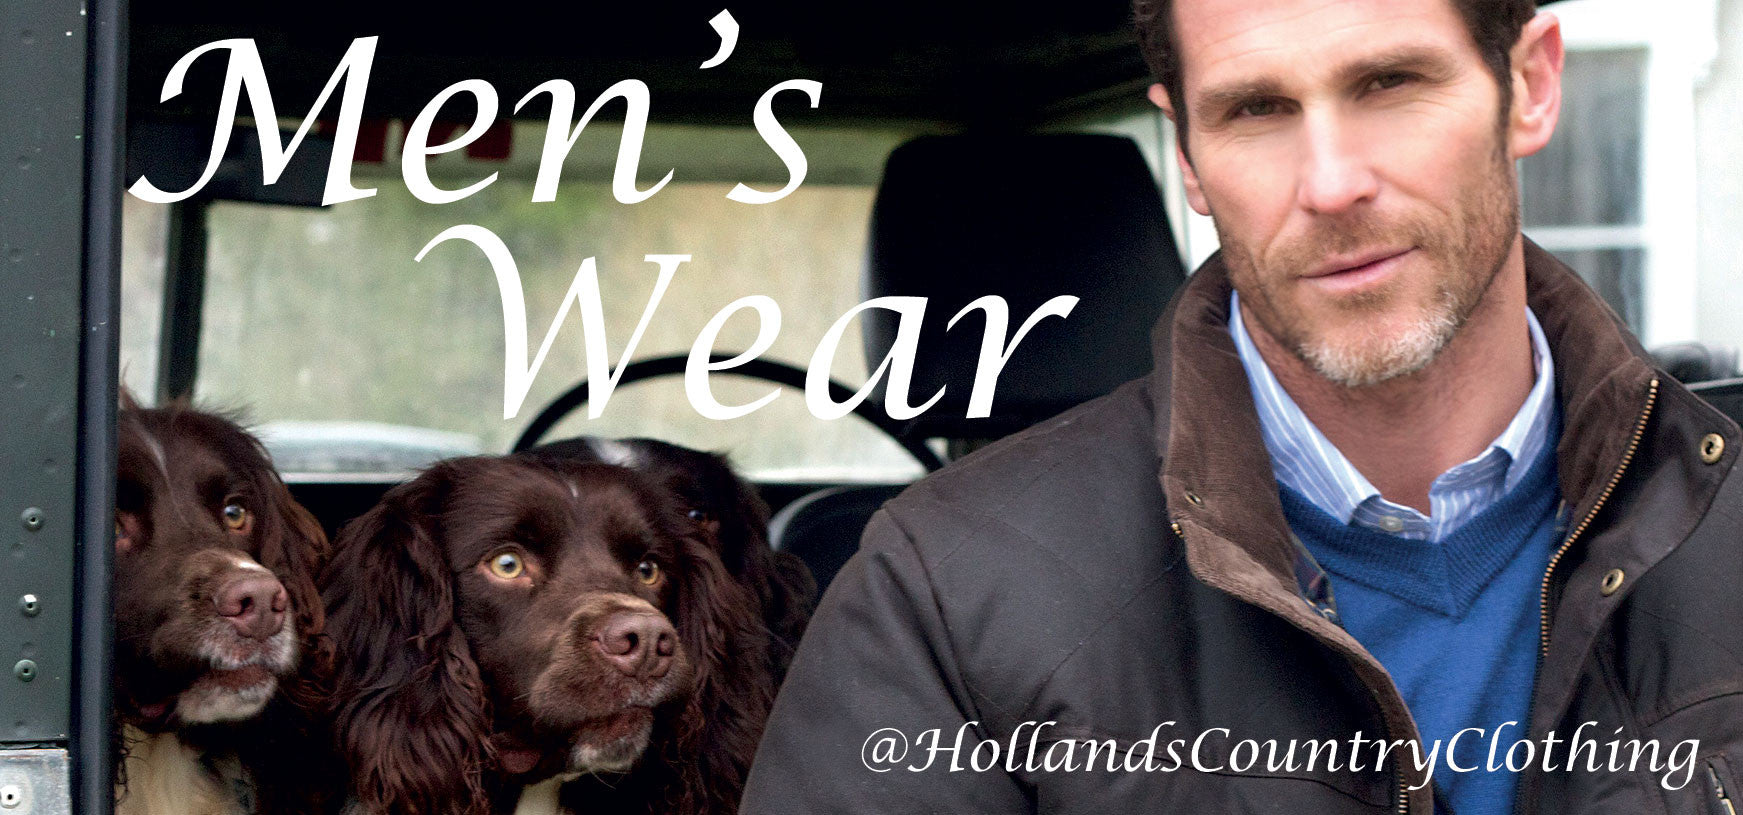 FIND IT HERE - Holland's Men's Wear - a complete, extensive range of Men's Outdoor Country Clothing